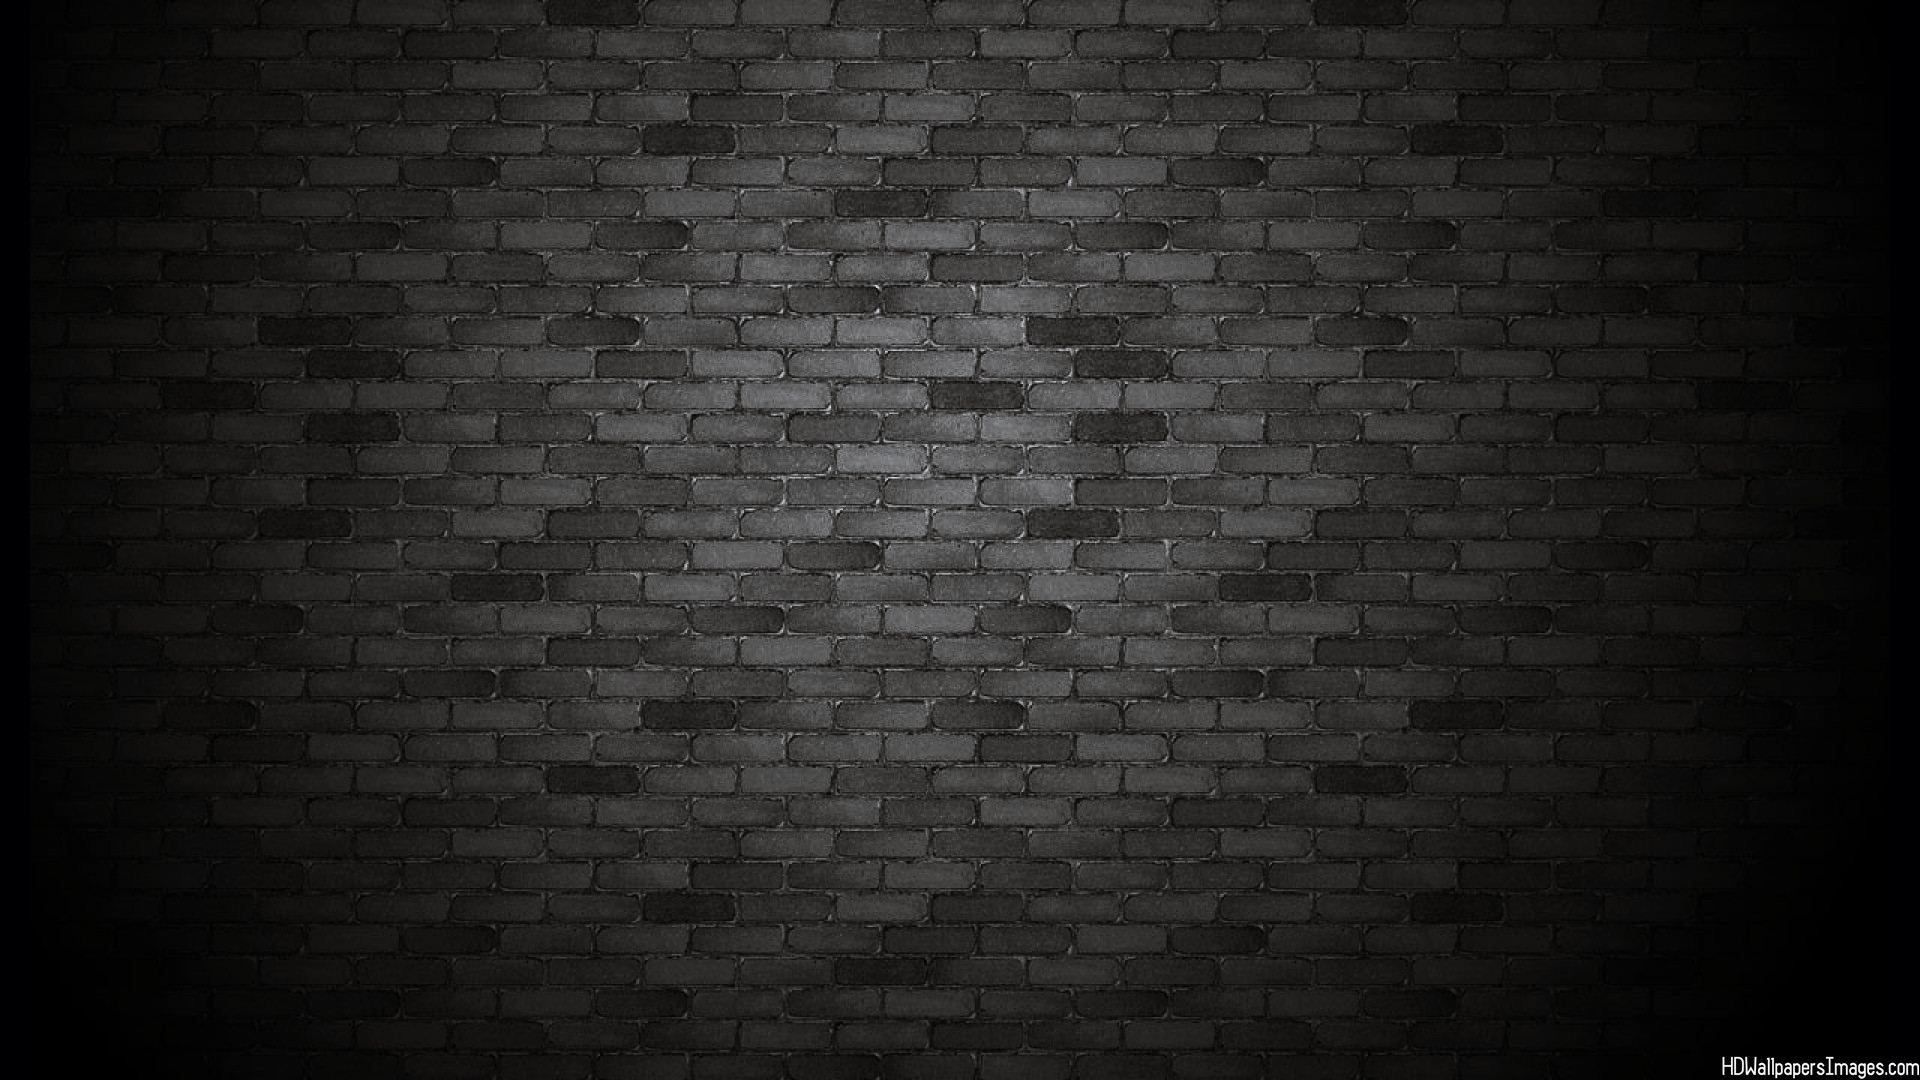 Black Brick Wall Bricks Texture Black Background Images Jpg 19201080